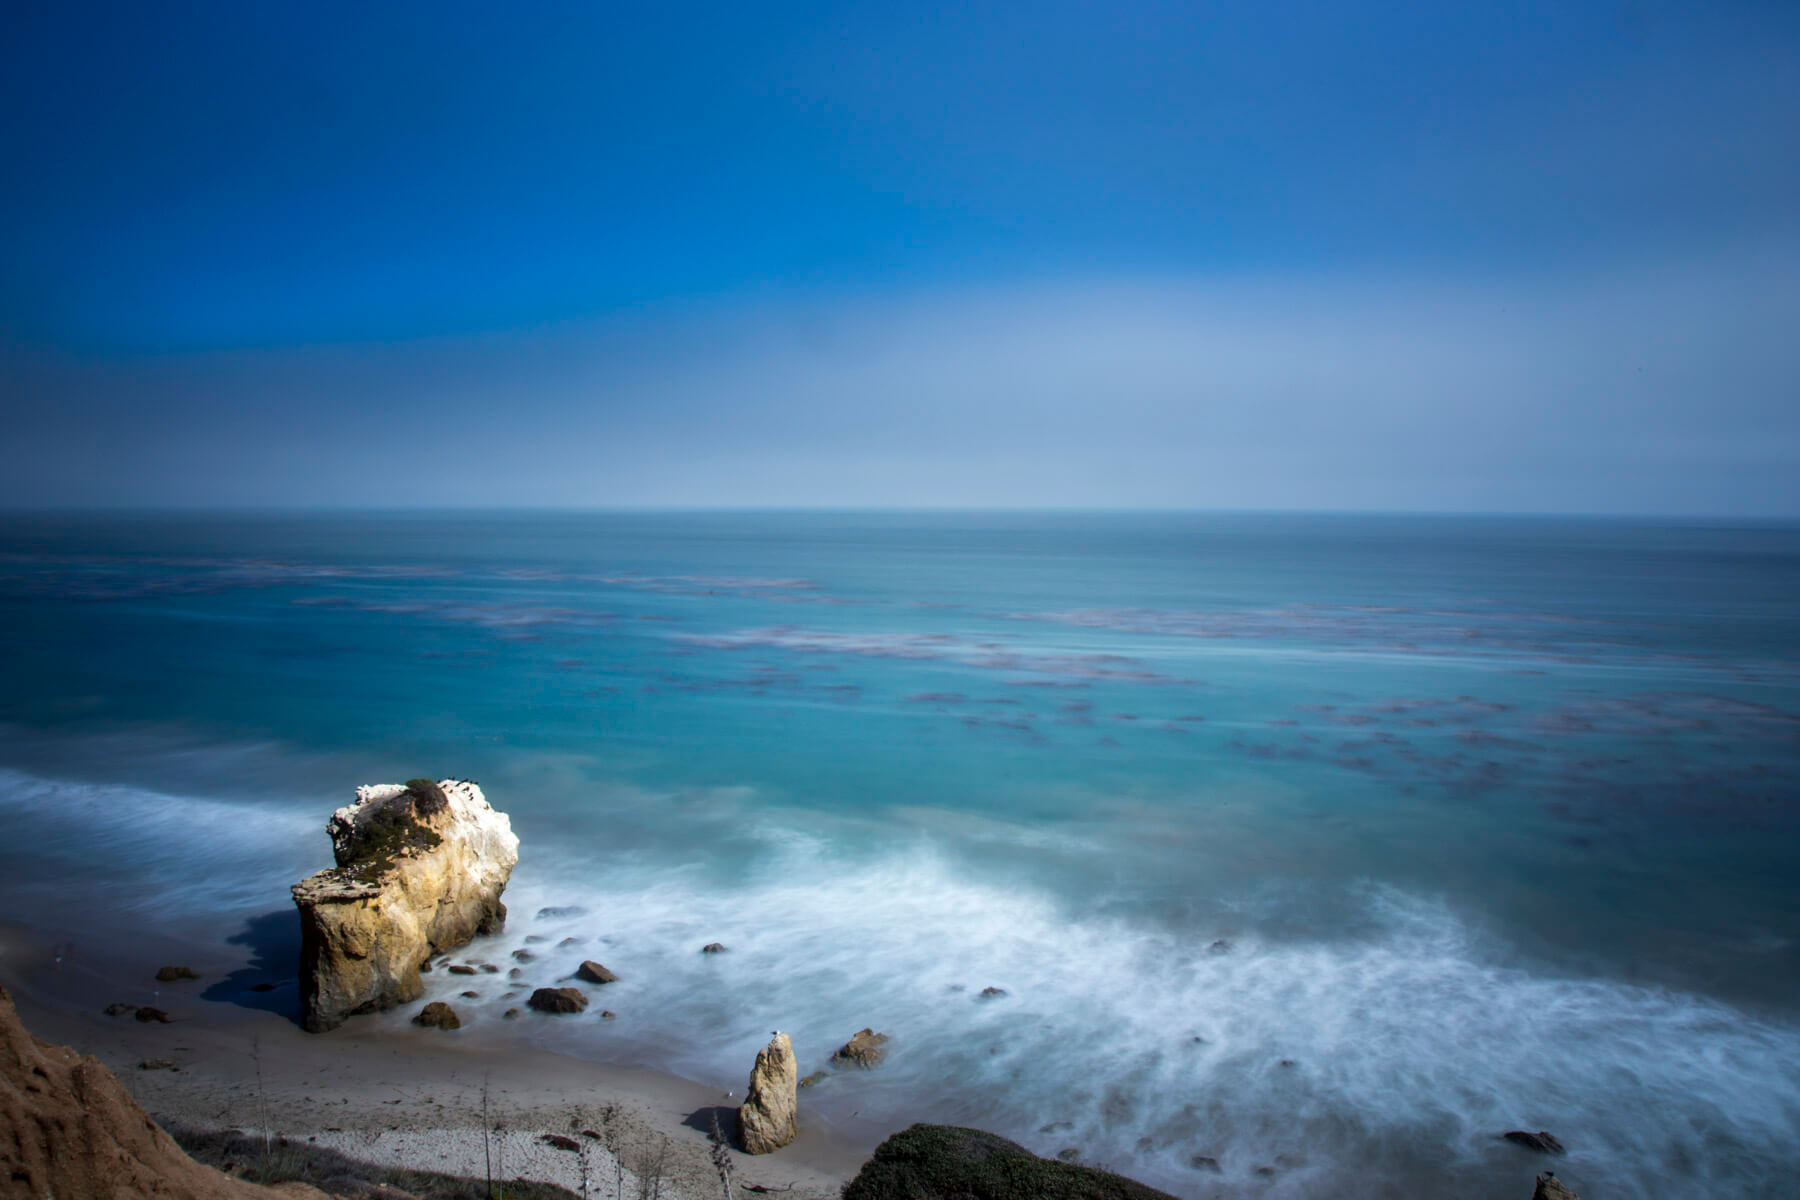 A long exposure photo looking down on El Matador beach in Malibu.